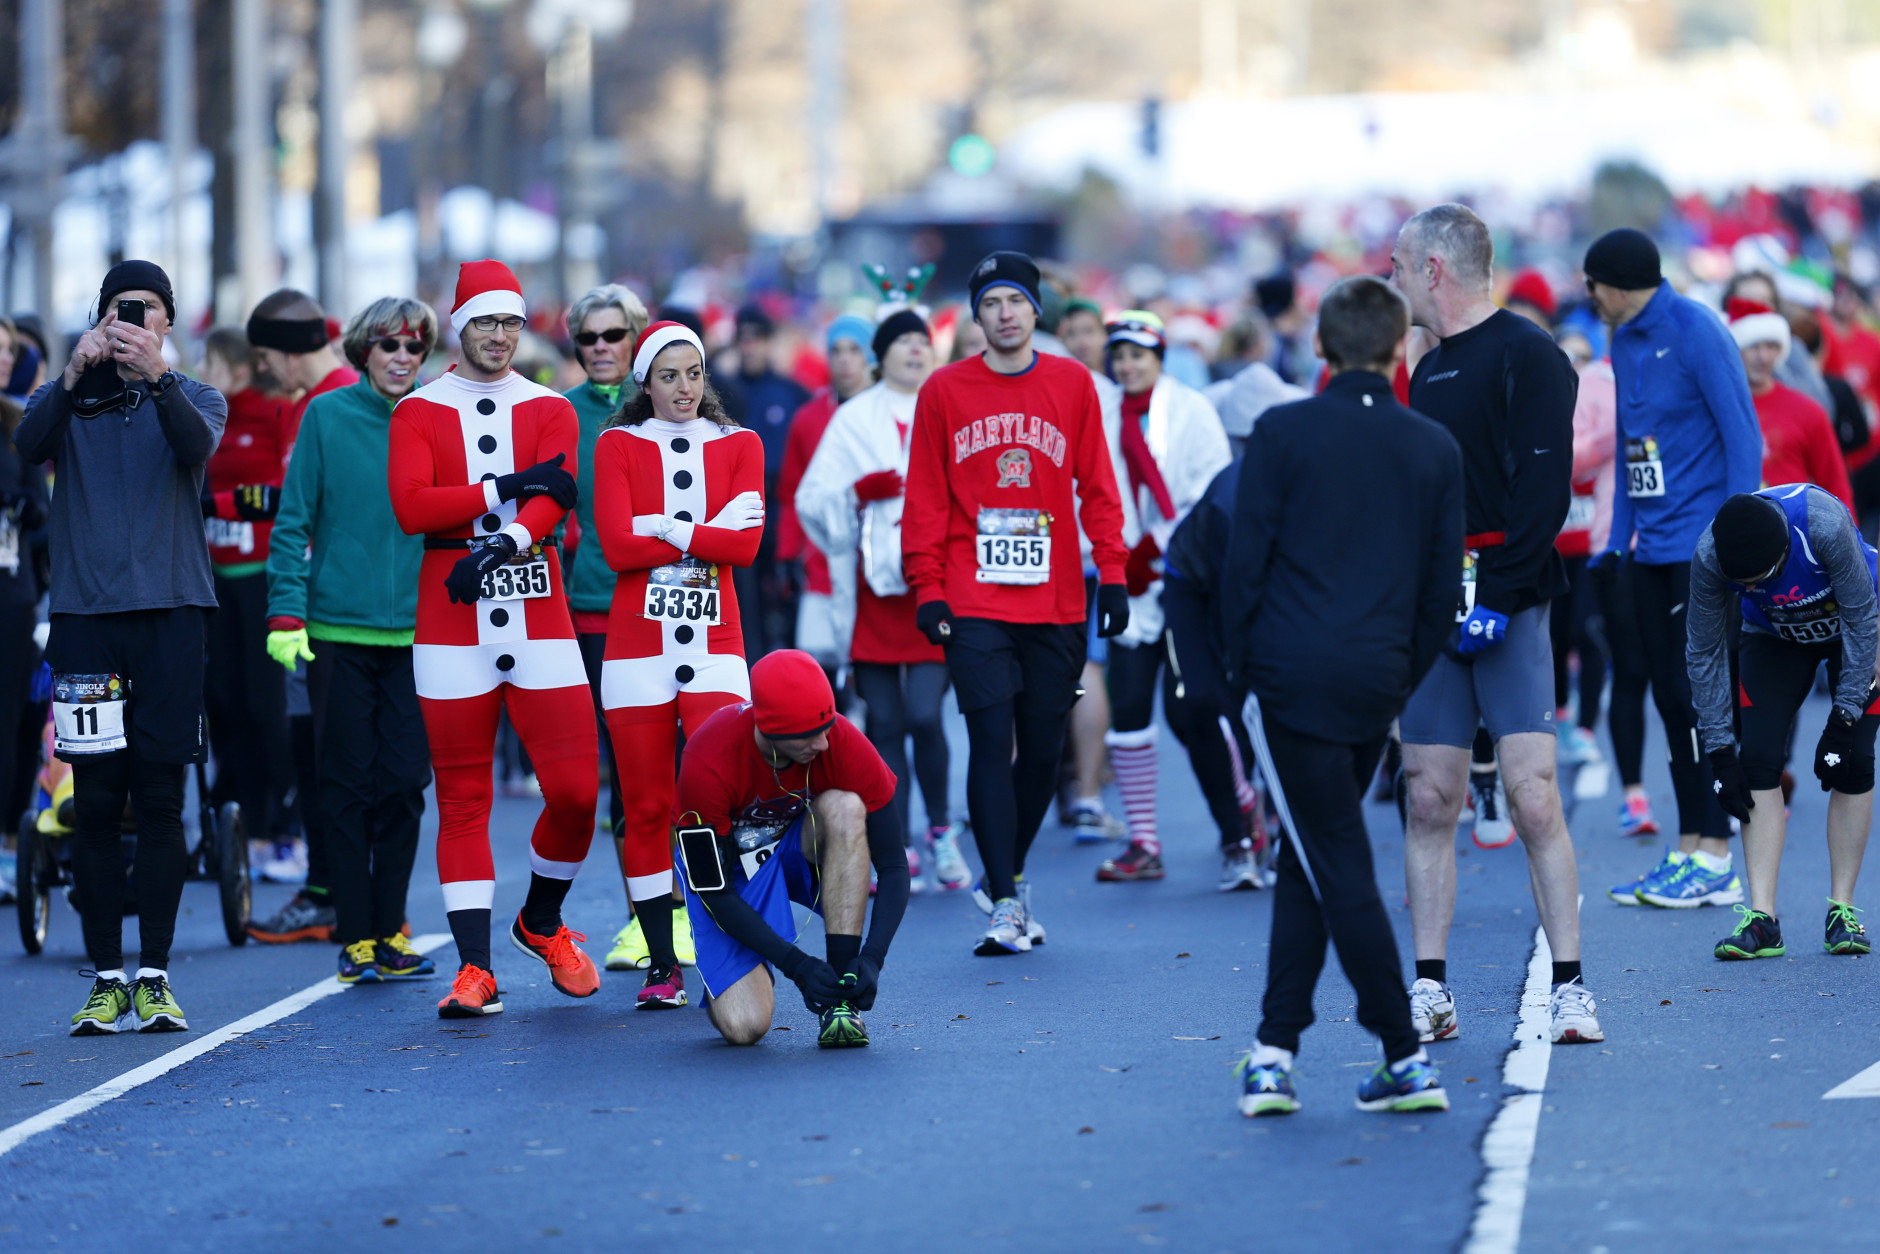 Jingle All The Way 5K Brings Holiday Cheer Street Closures To DC On Sunday